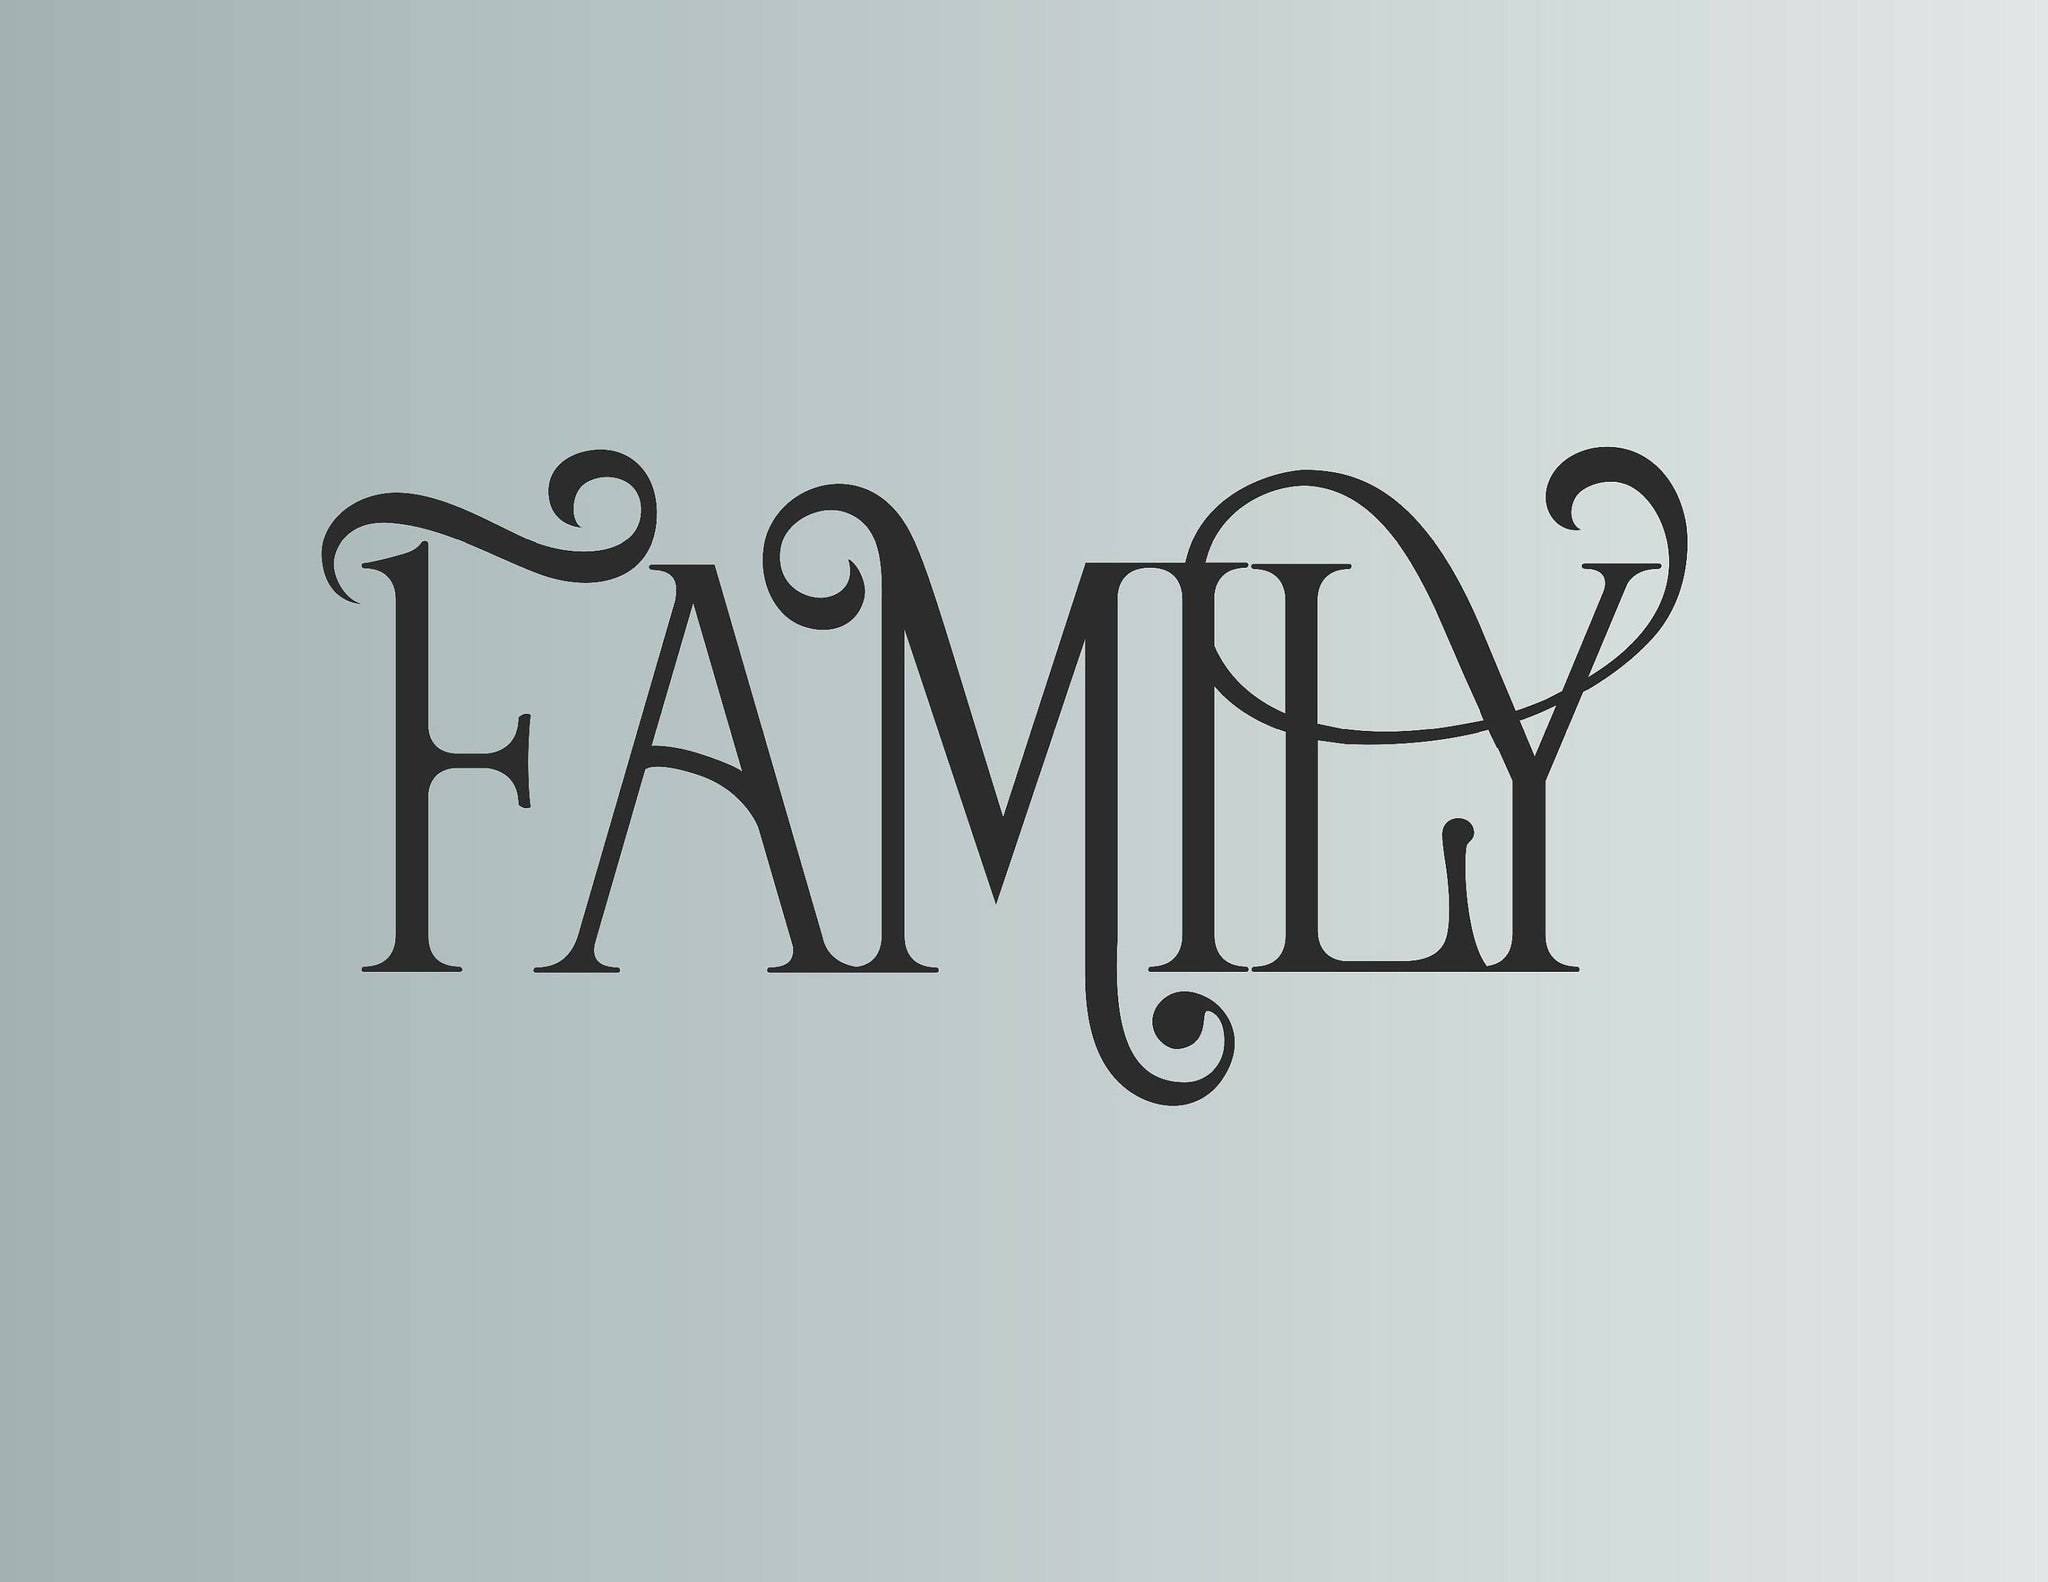 Family Wall Decal, Family Wall Sticker